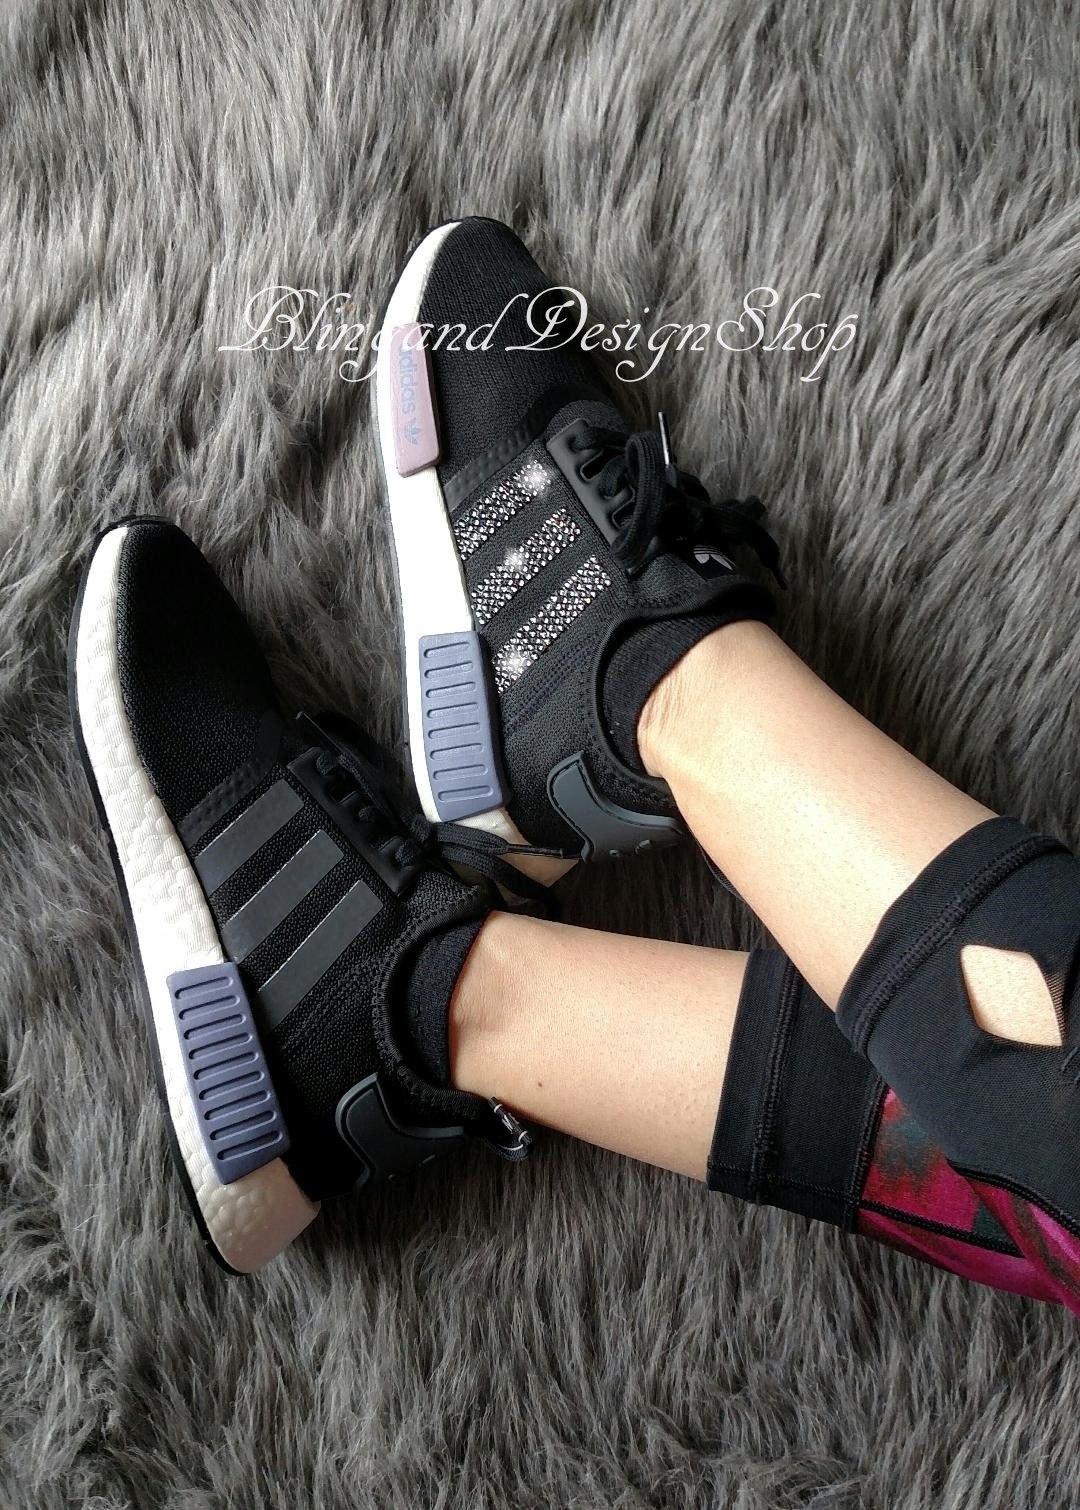 2cc044dd404c3 Swarovski Adidas Shoes Womens NMD Runner Shoes Customized with Crystal  Rhinestones Bling Adidas Shoes